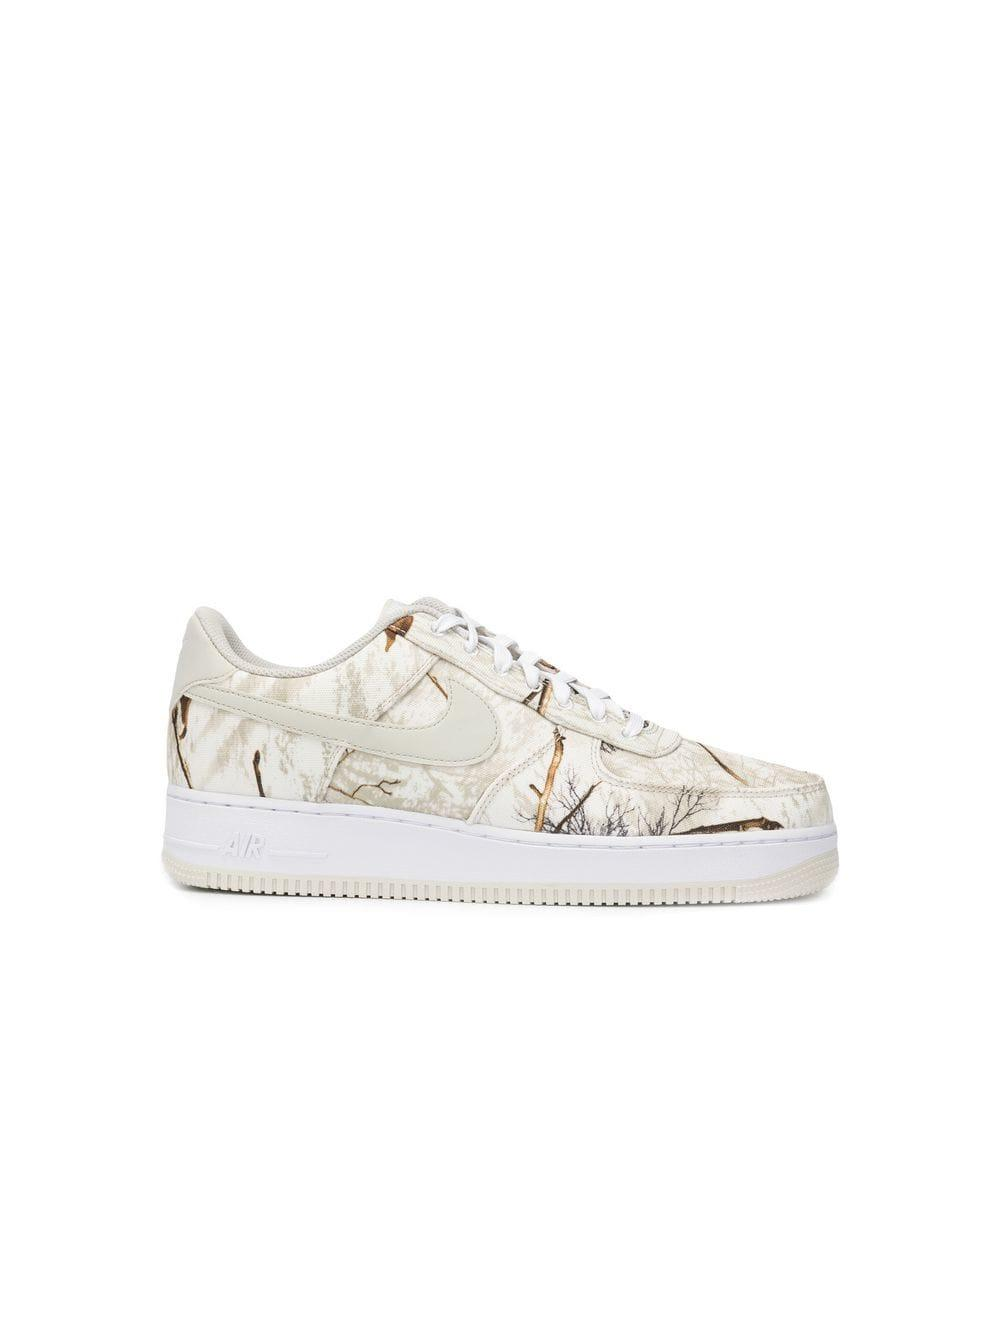 5abce5145b23 Lyst - Nike Air Force 1 X Realtree Sneakers in White for Men